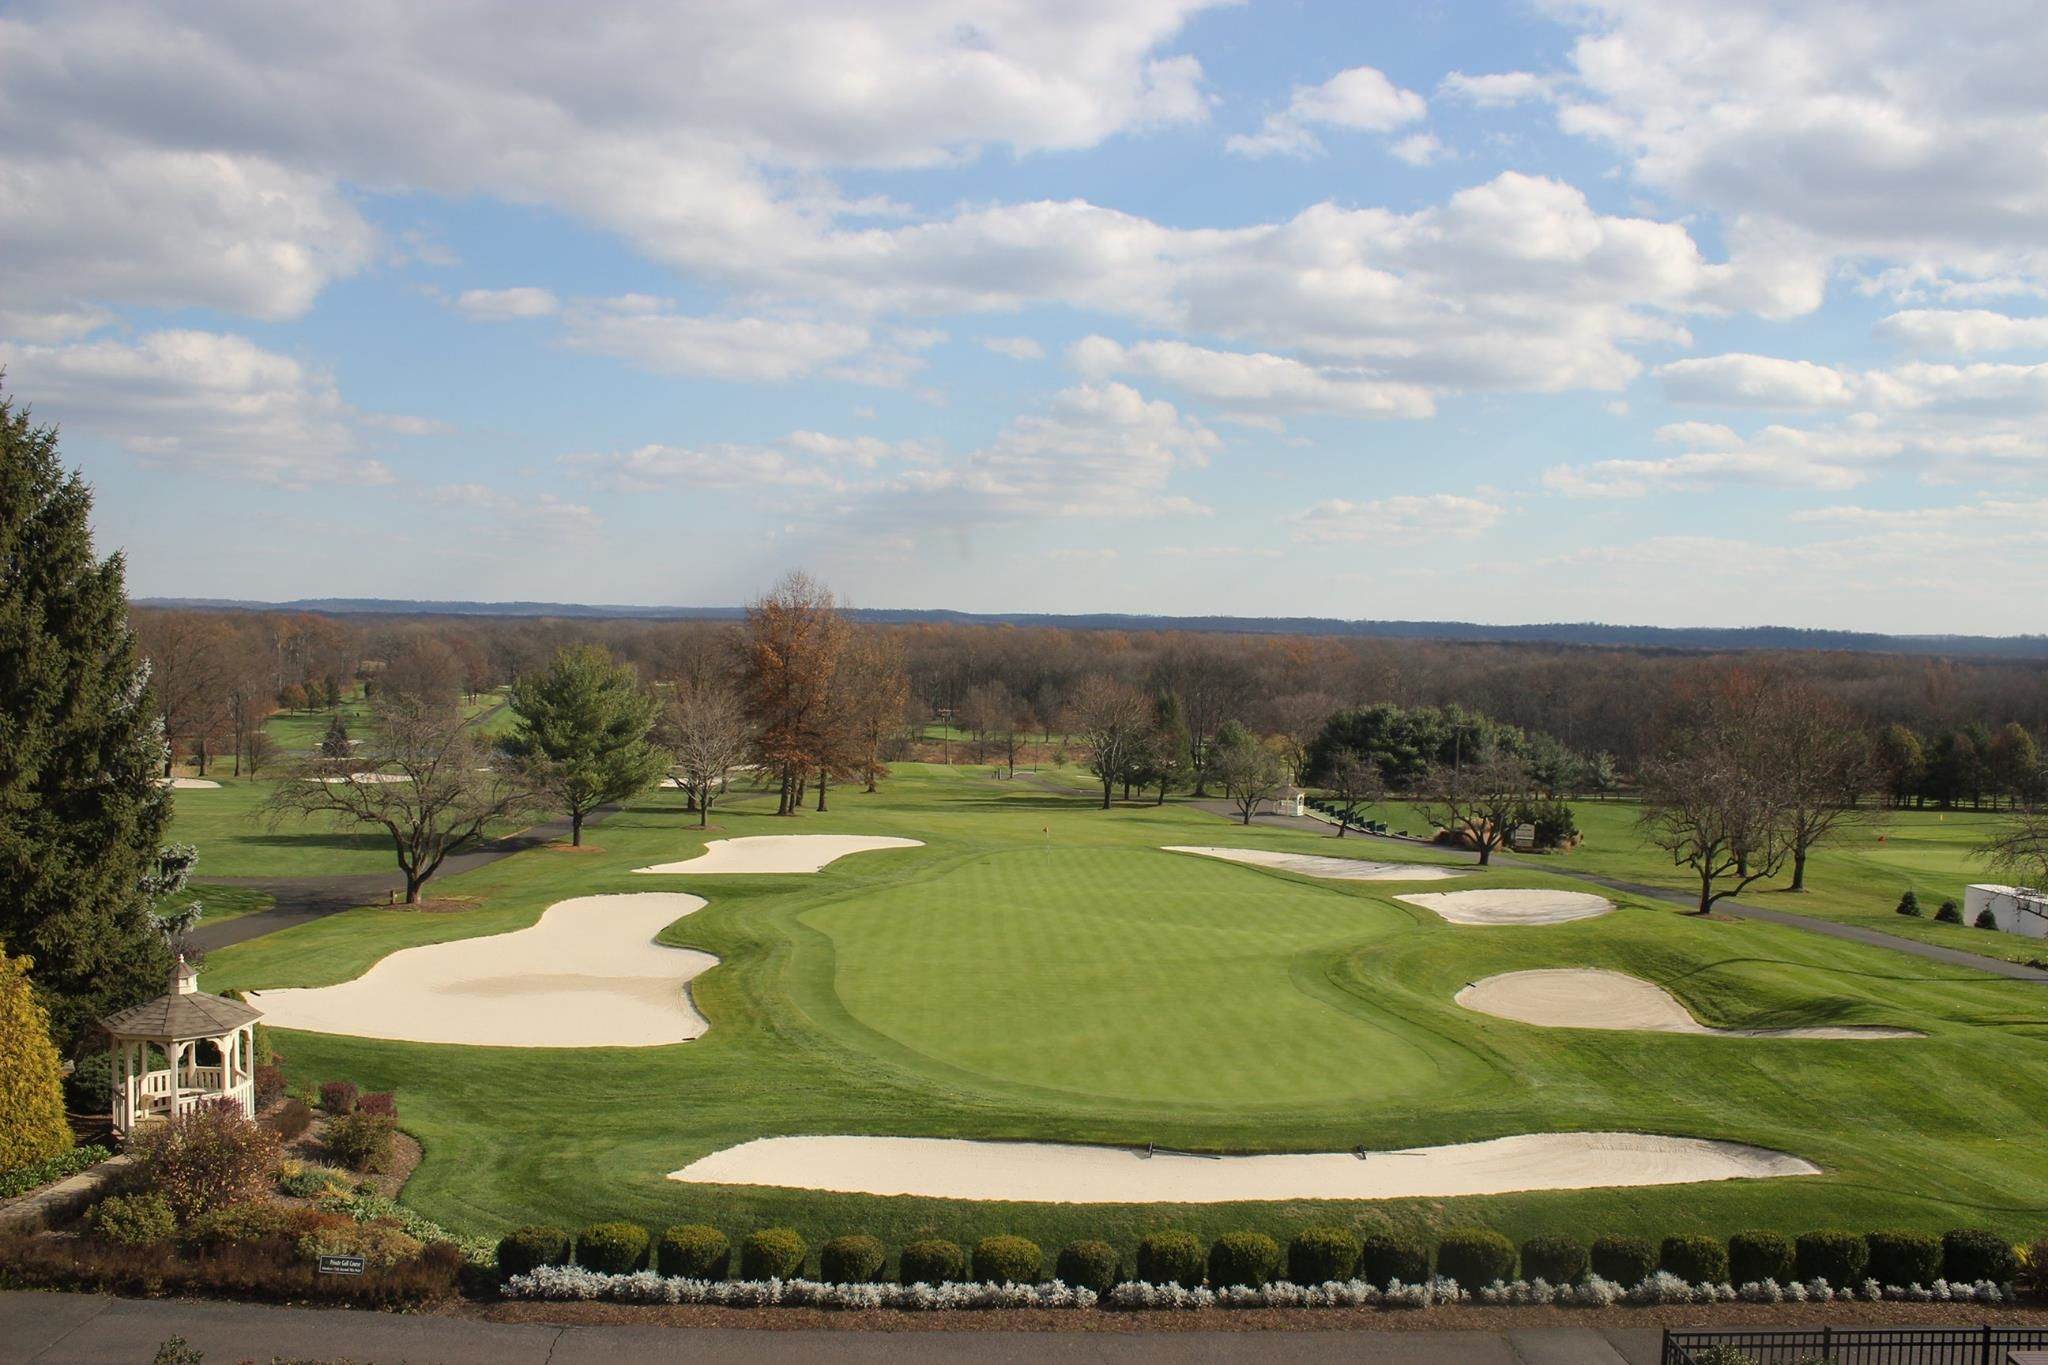 Basking ridge country club cover picture